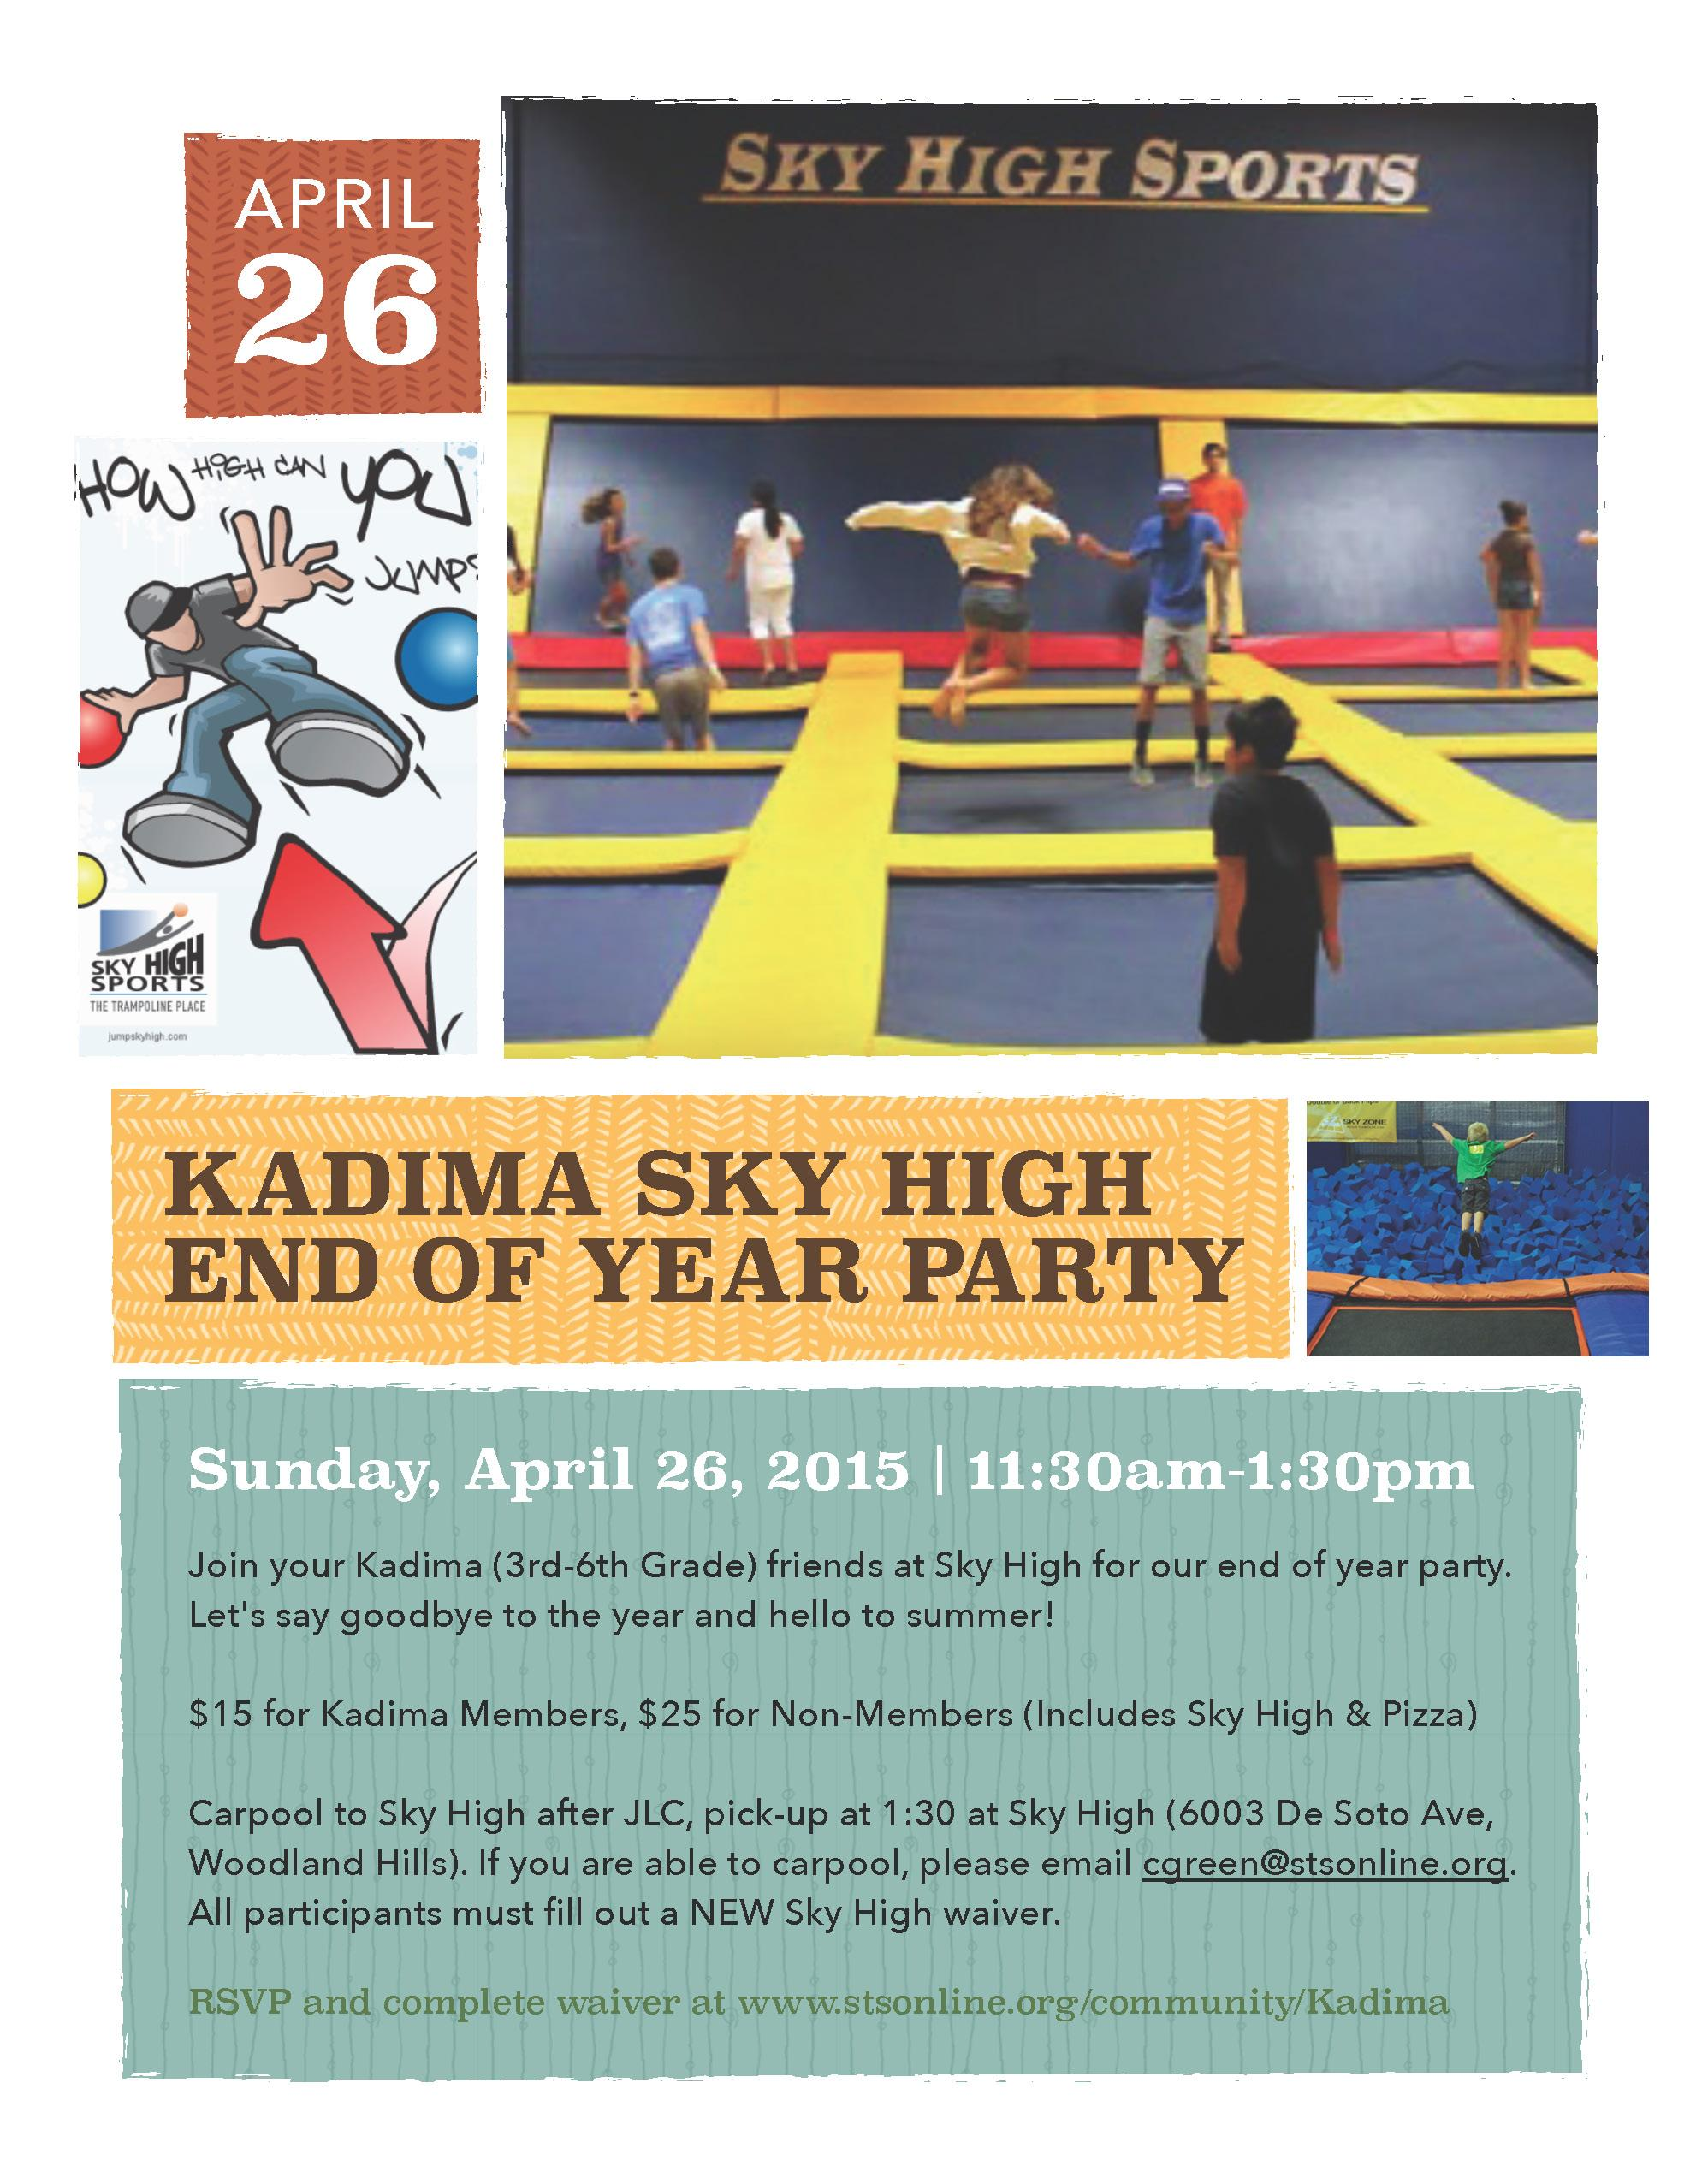 Kadima SkyHigh